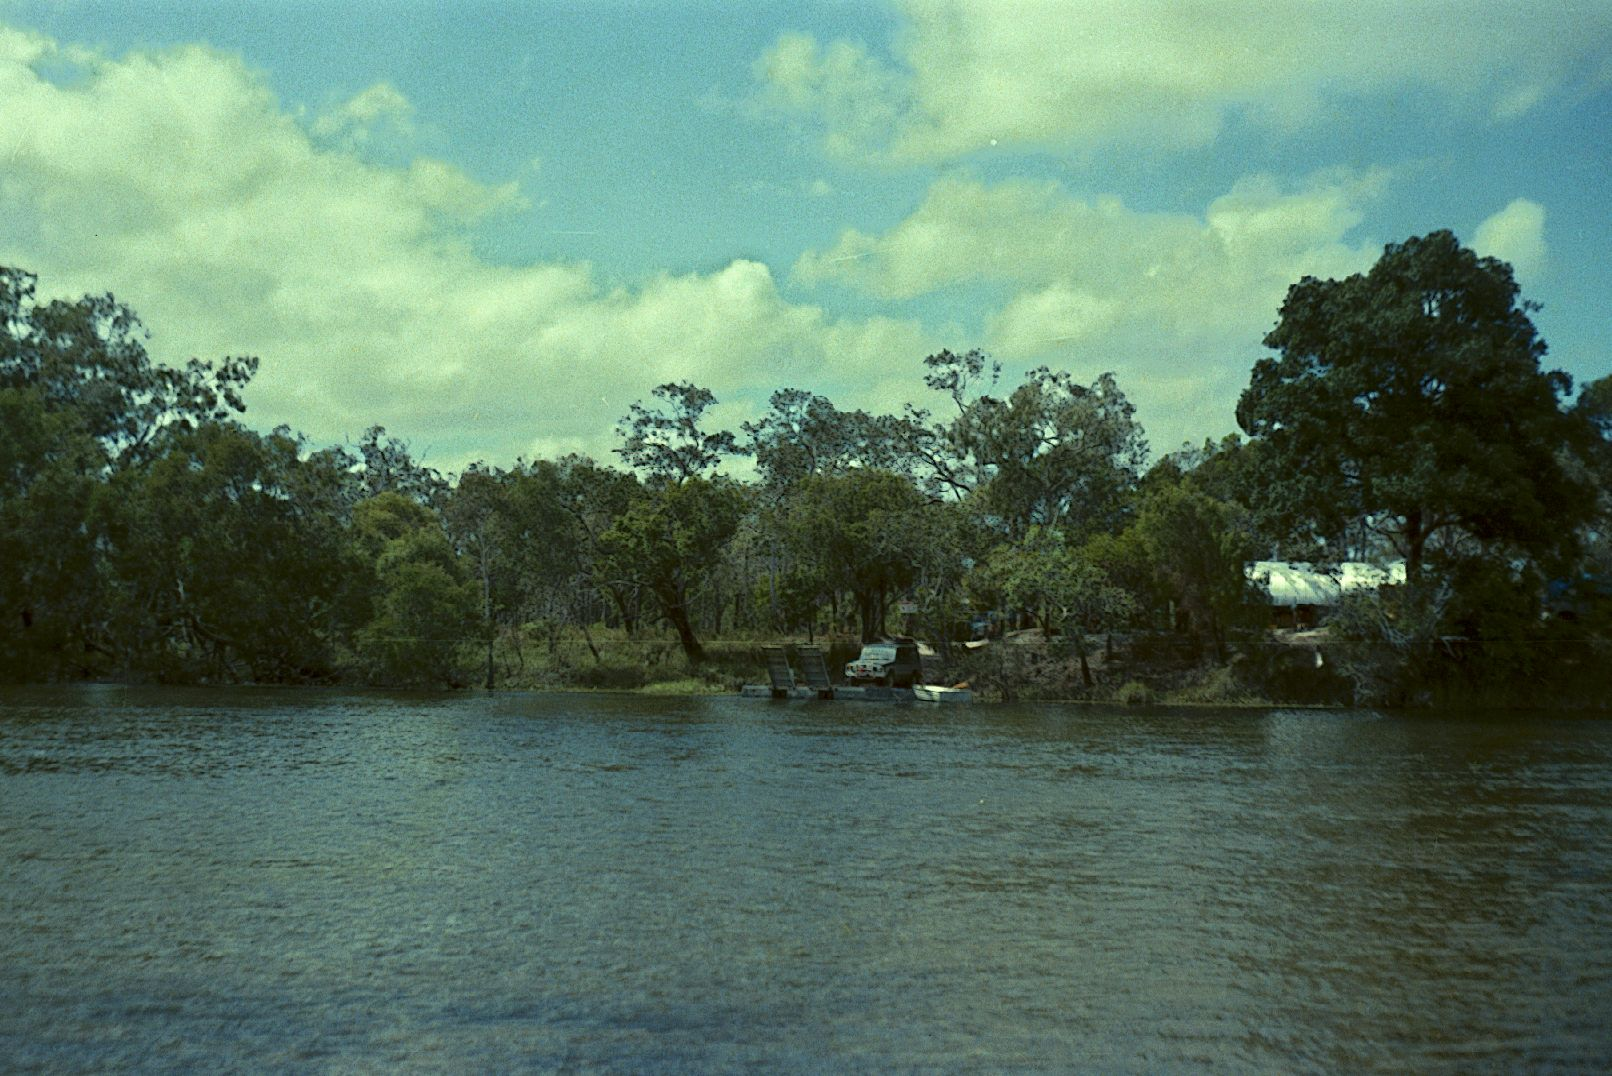 jardine river crossing 1986